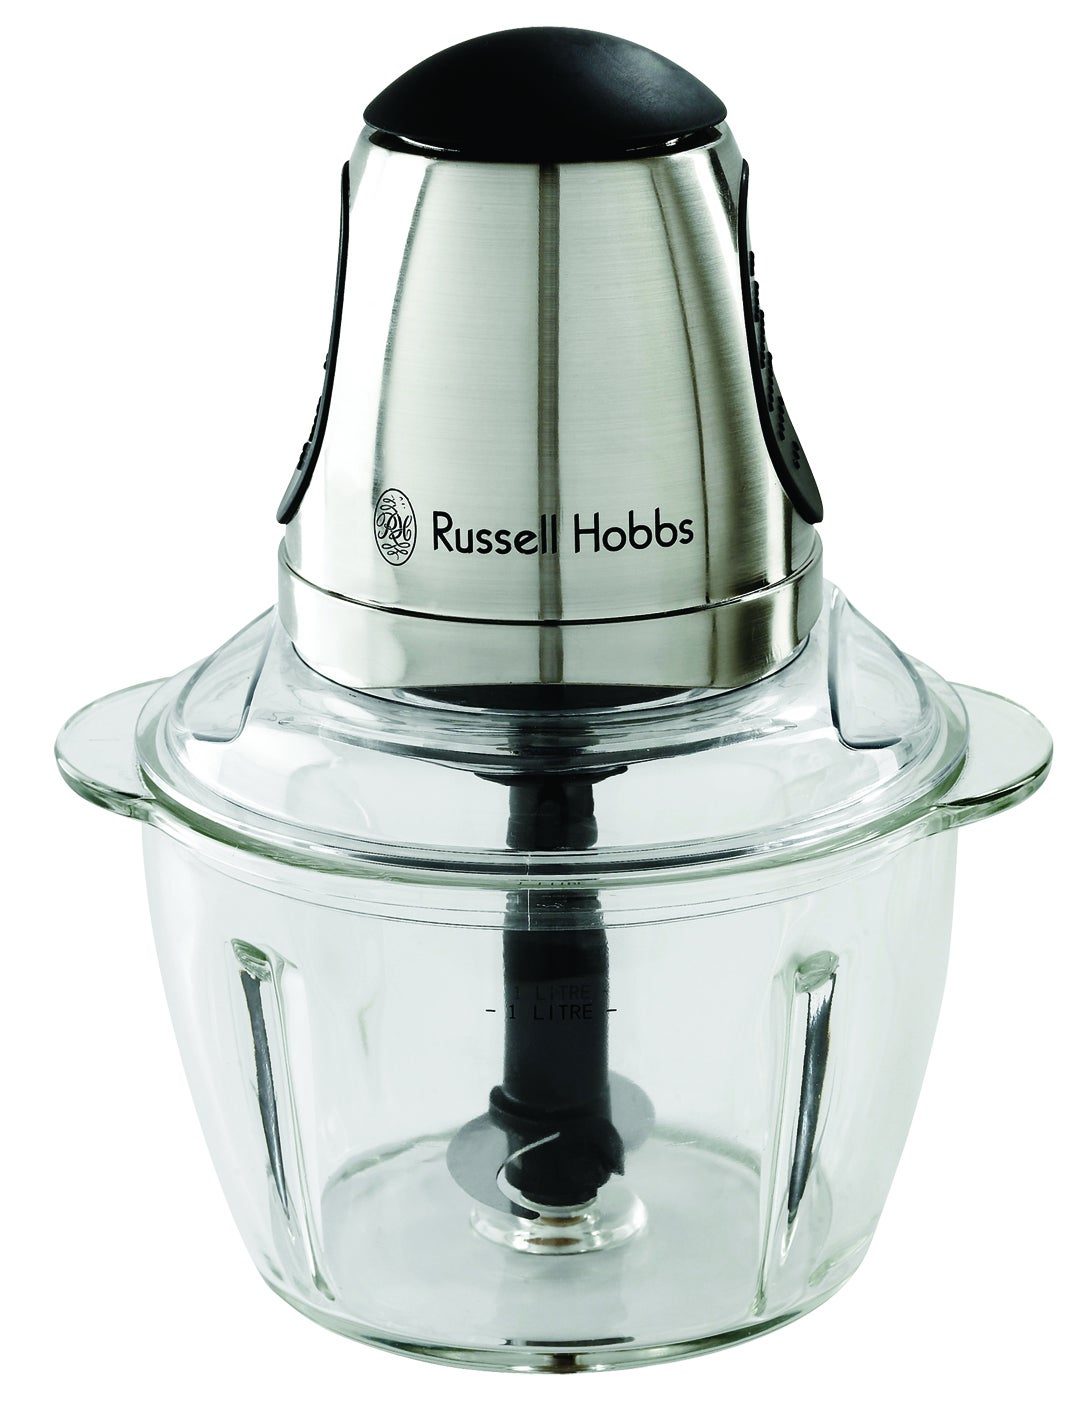 Russell Hobbs 14568 Stainless Steel Mini Food Processor